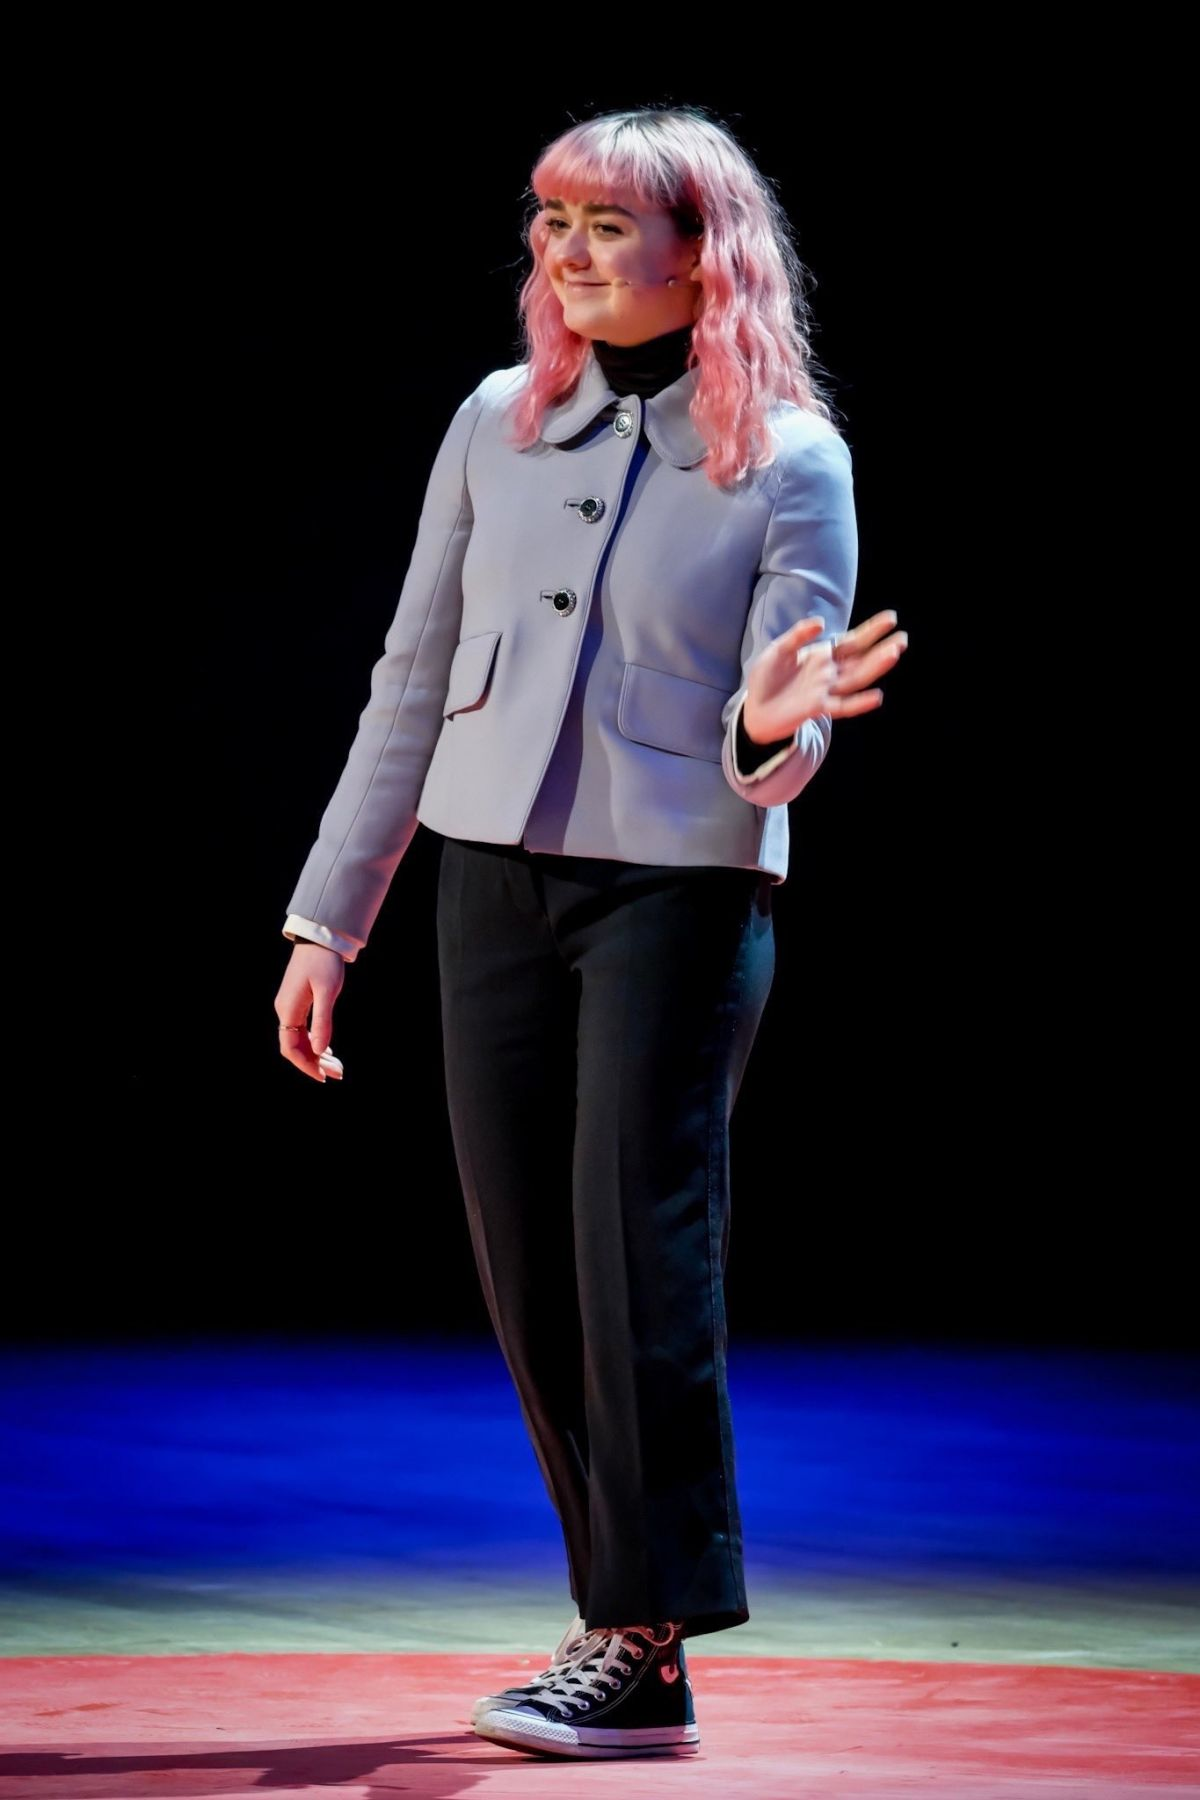 Maisie Williams At Tedx In Manchester 02 03 2019 Hawtcelebs